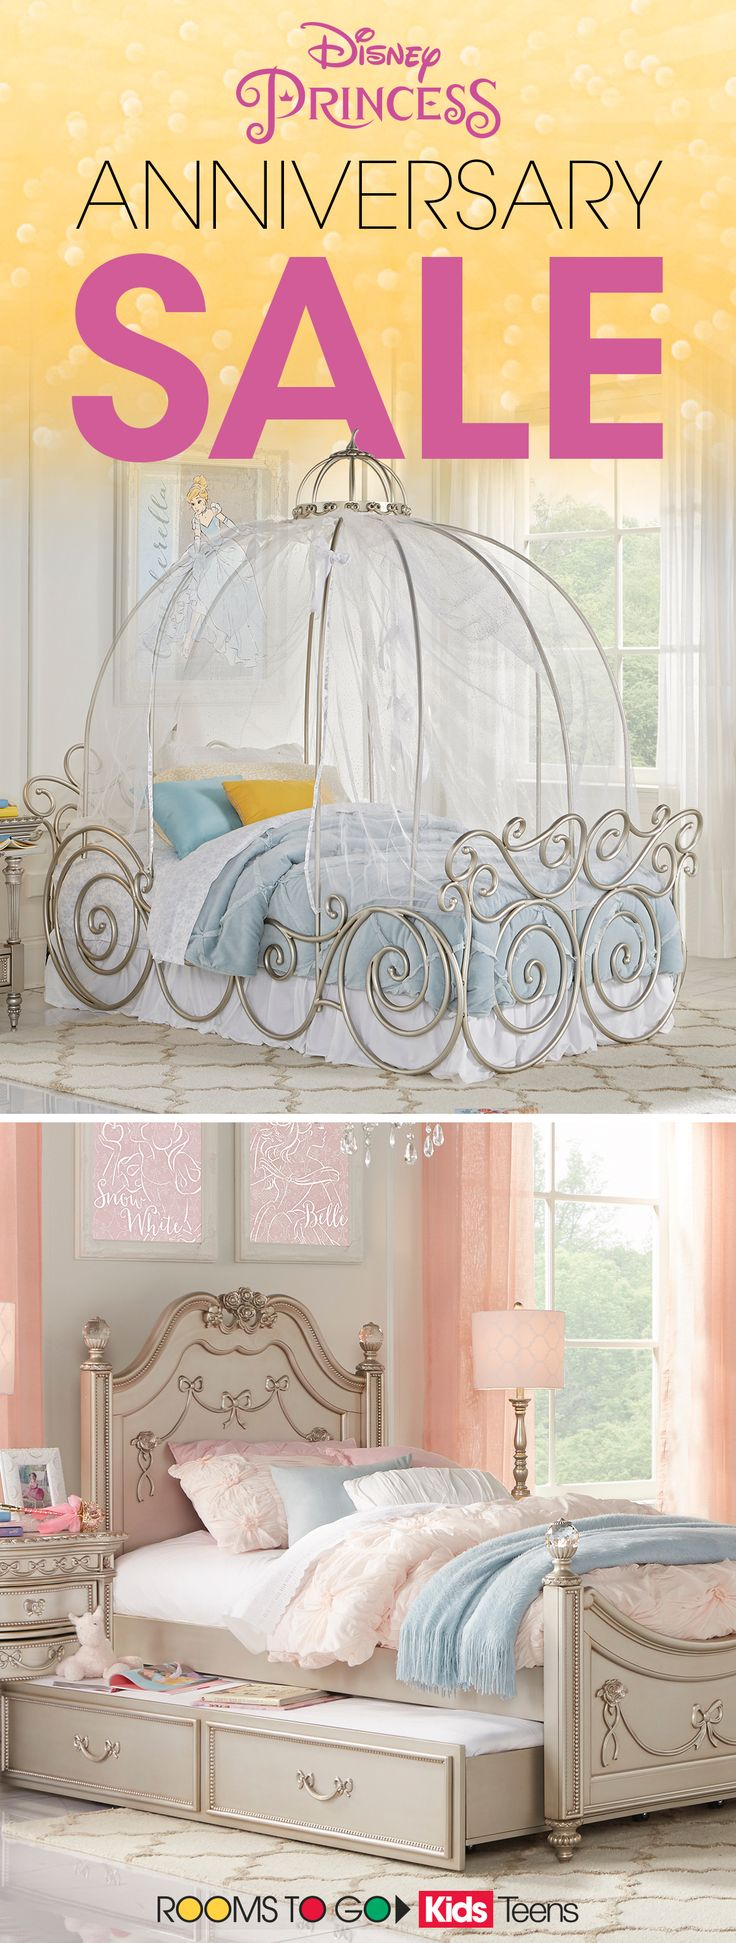 Give your princess the room of her